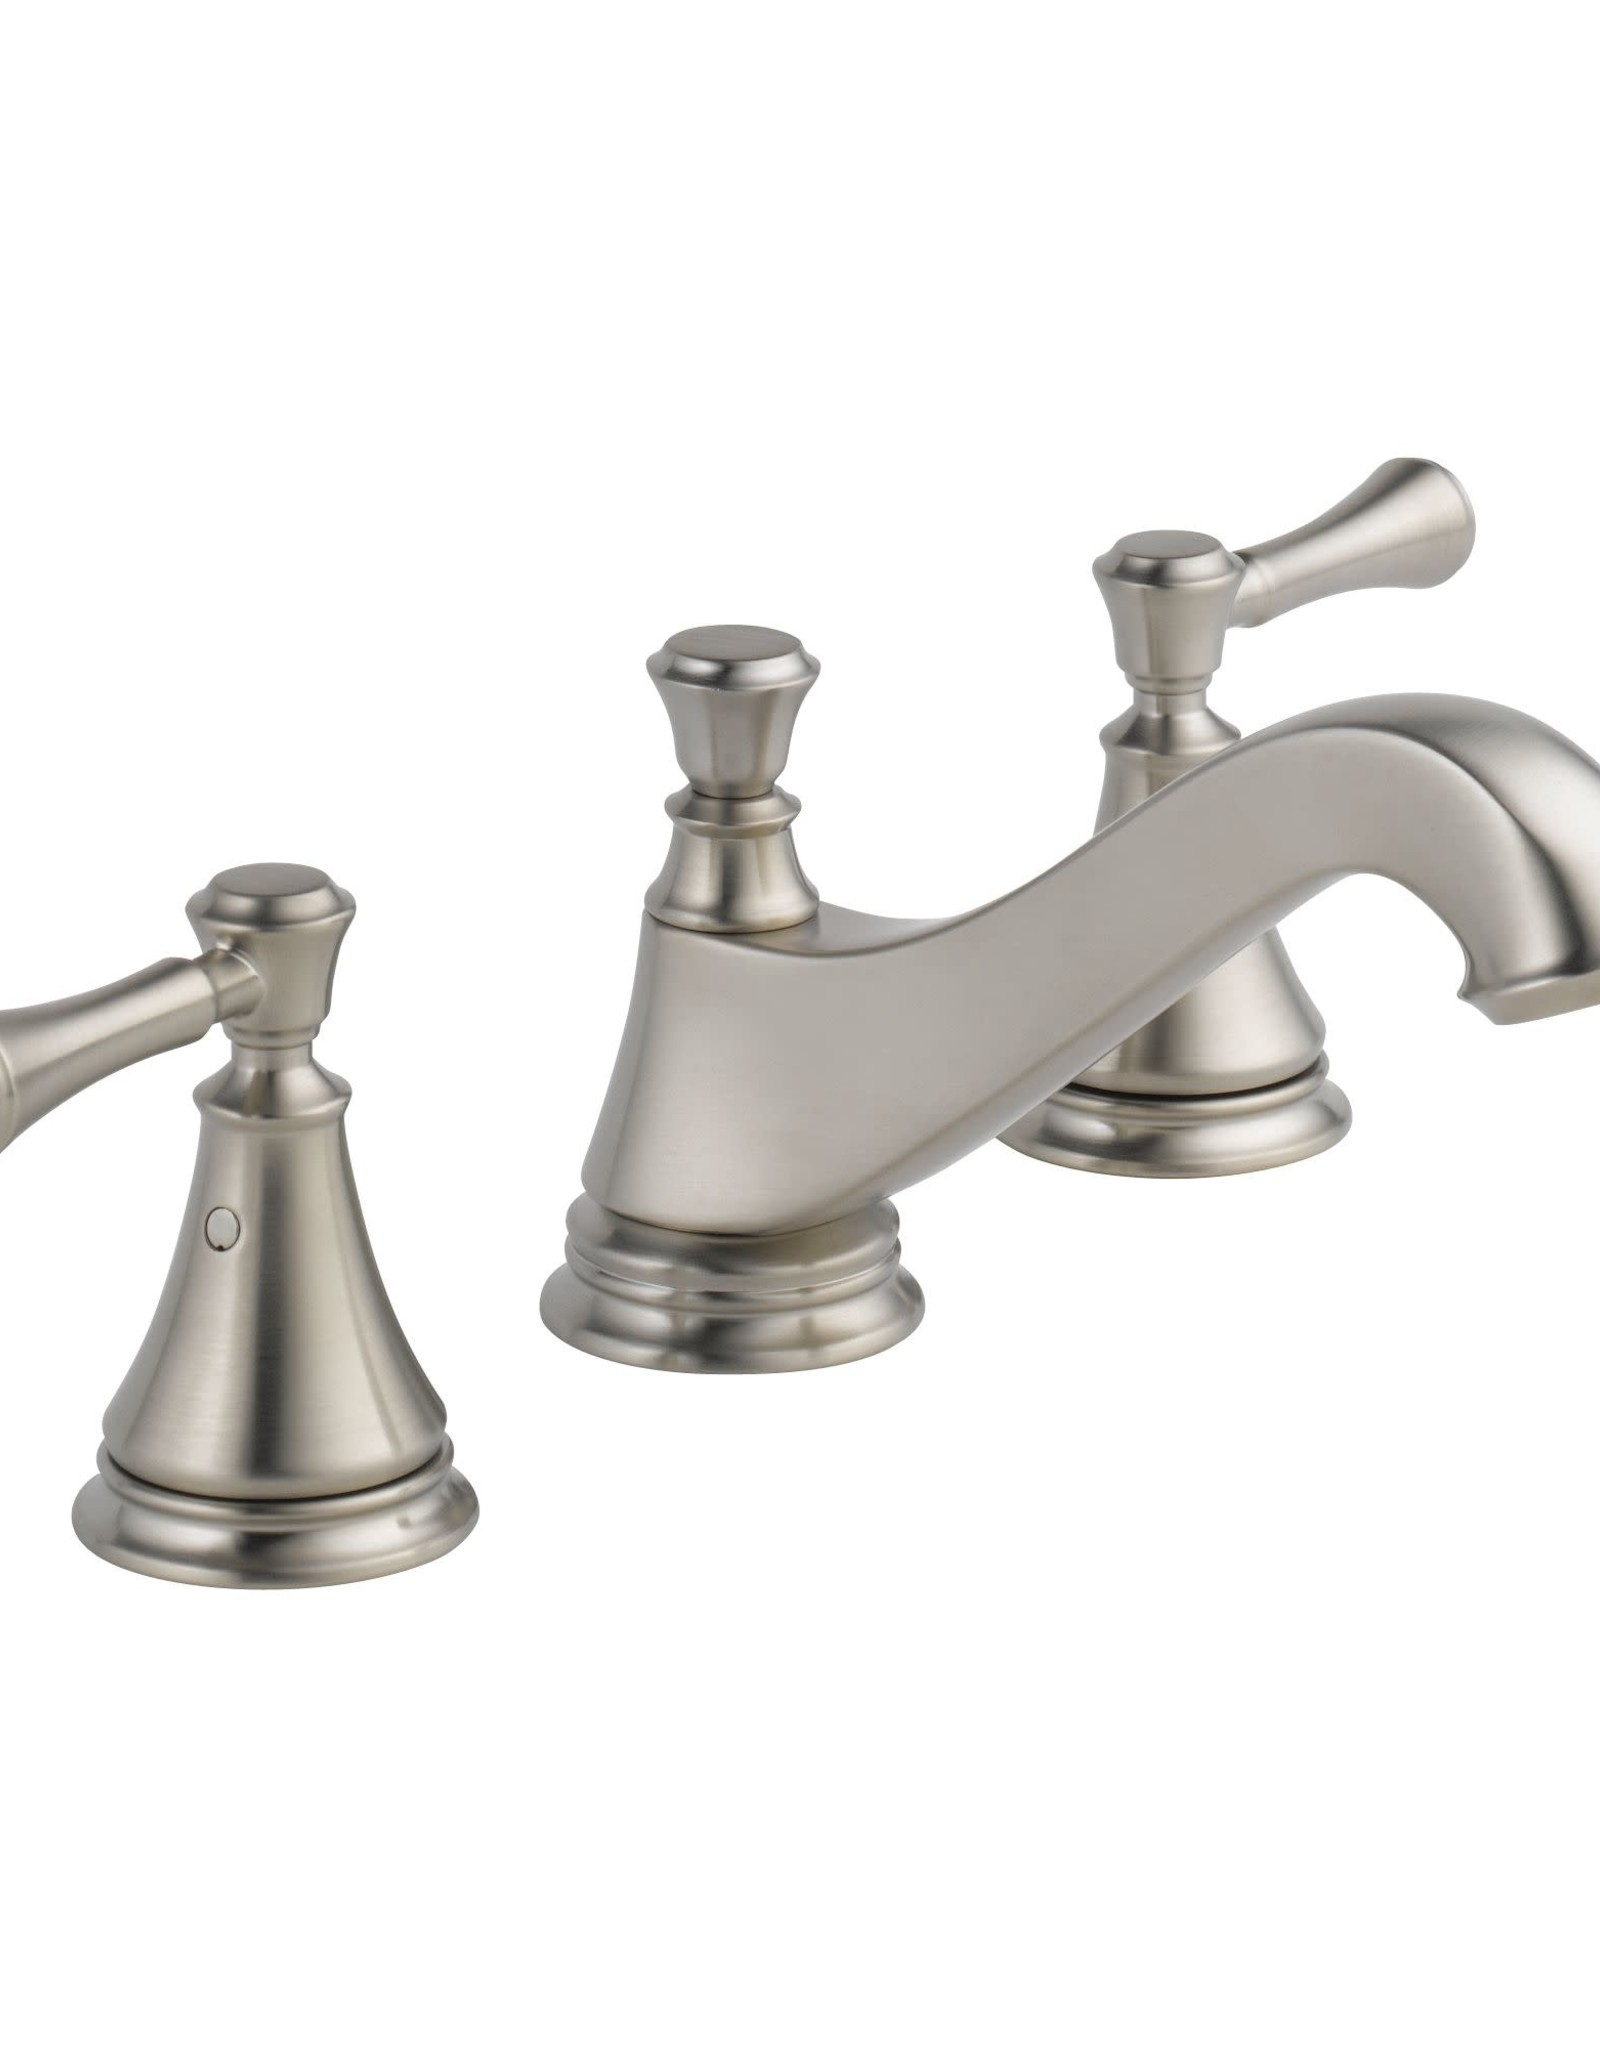 Delta DELTA CASSIDY - BRILLIANCE STAINLESS TWO HANDLE WIDESPREAD LAVATORY - LOW ARC SPOUT LESS HANDLES